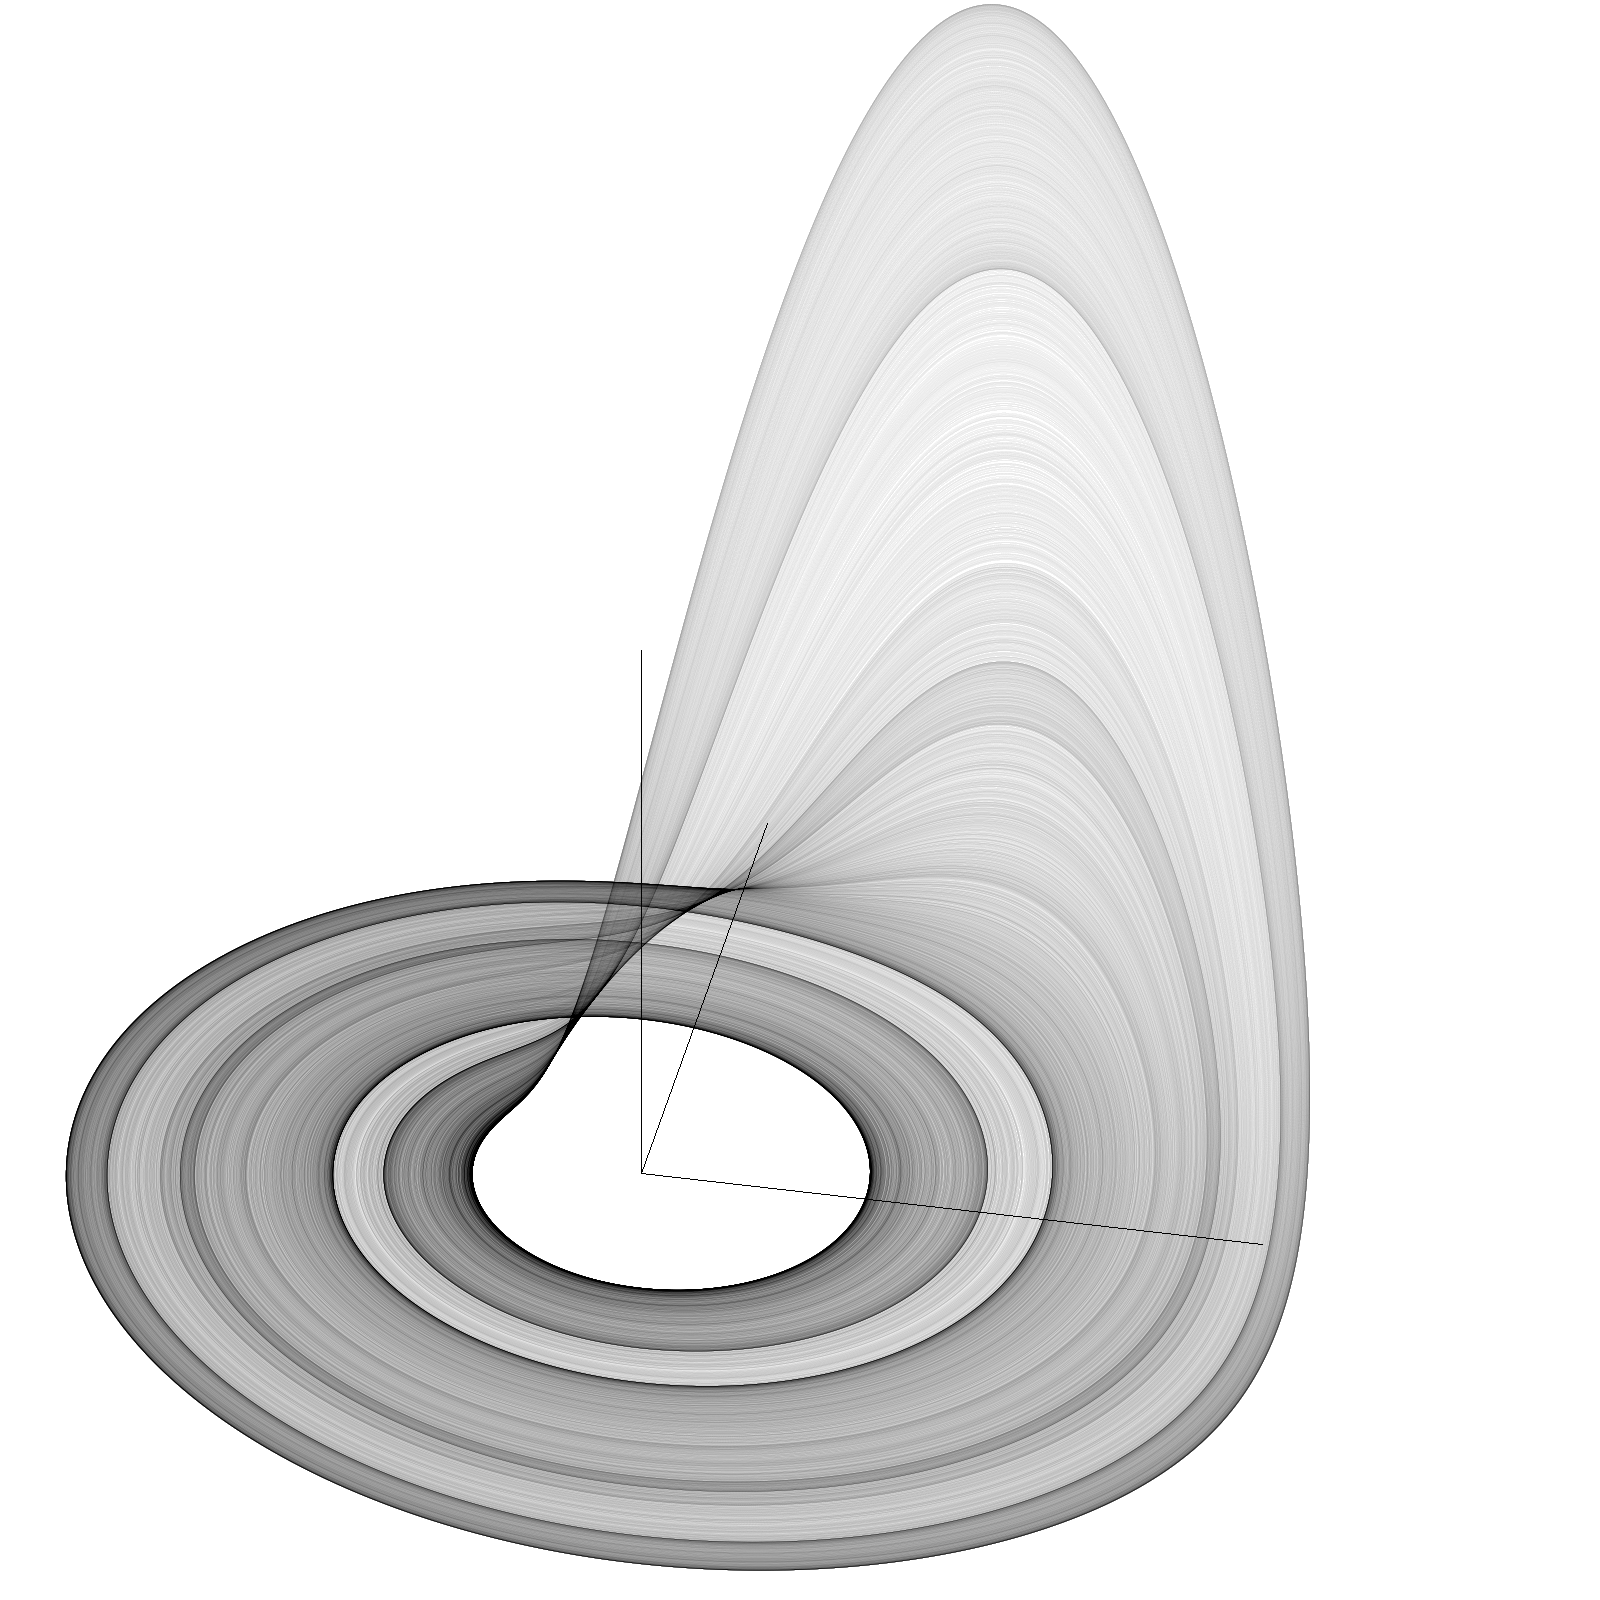 http://upload.wikimedia.org/wikipedia/commons/7/75/Roessler_attractor.png